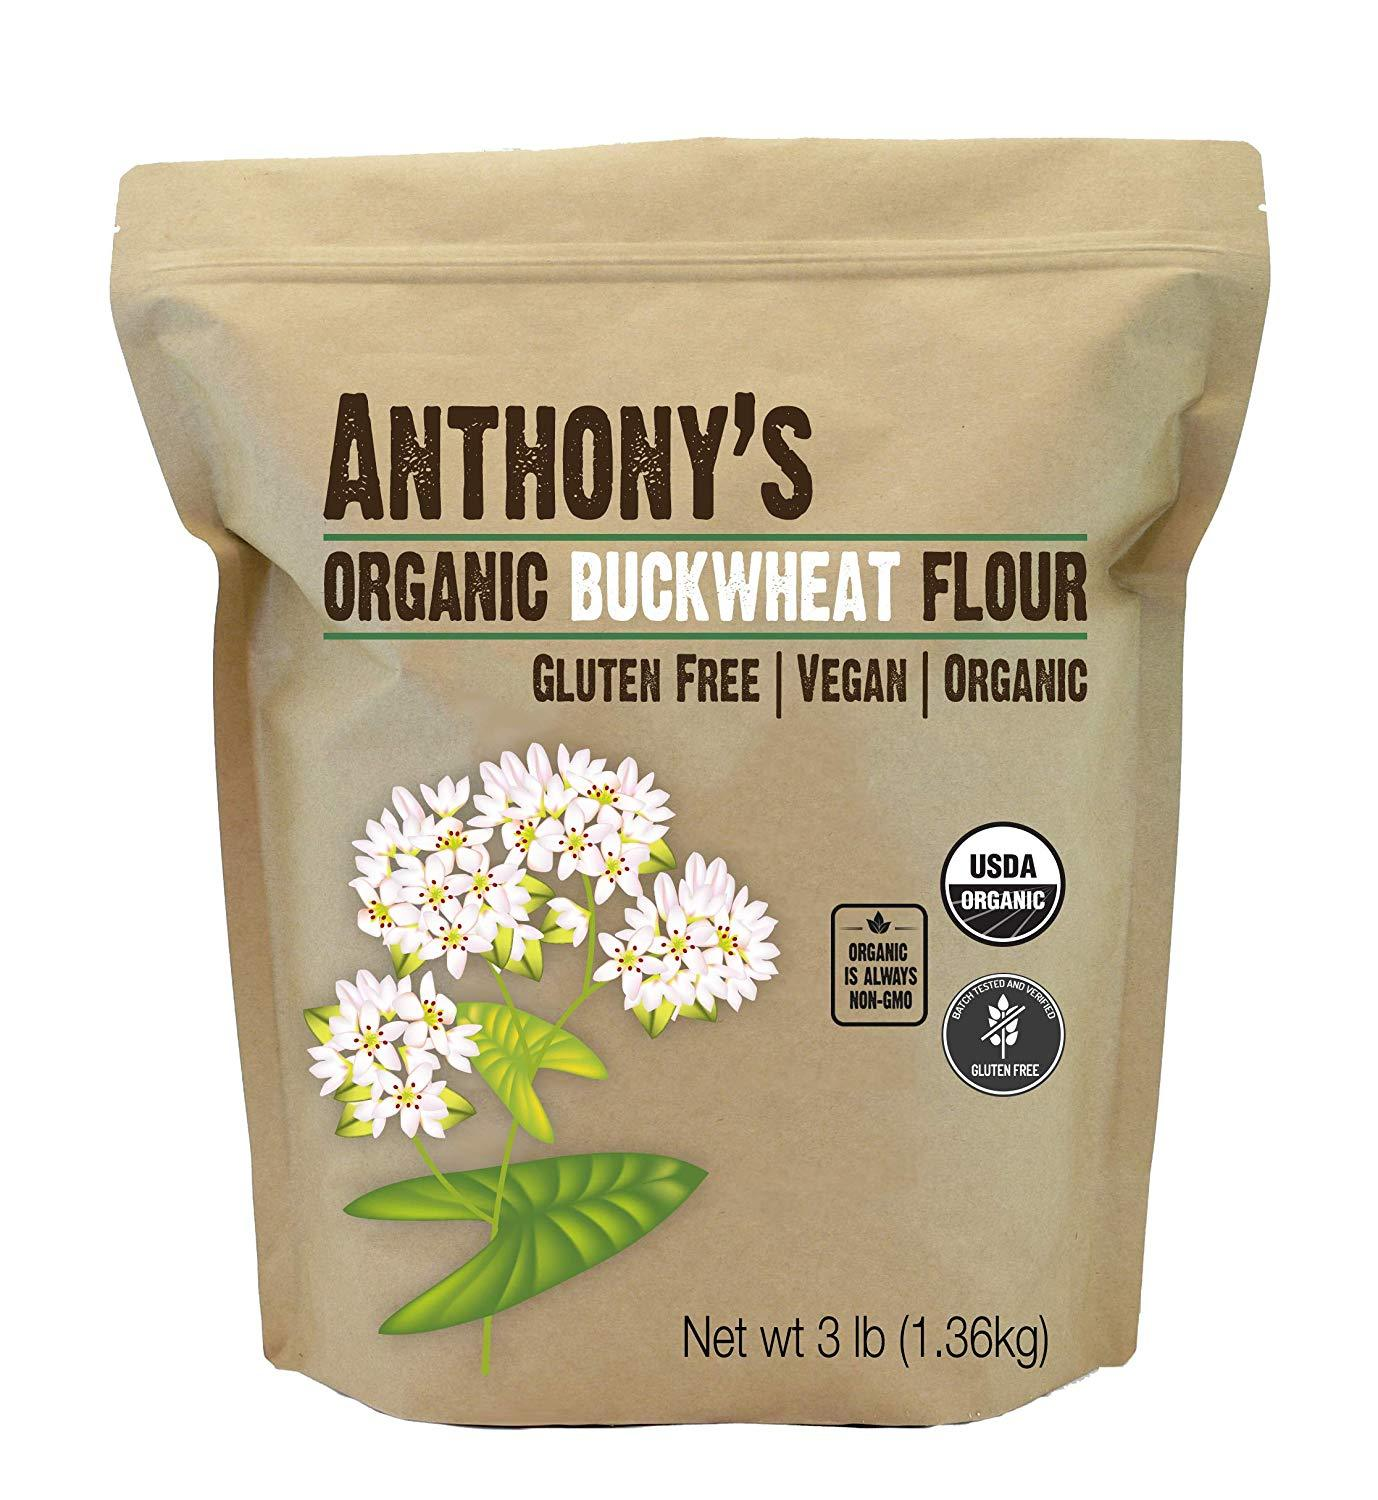 Organic Buckwheat Flour: Grown in USA & Gluten-Free